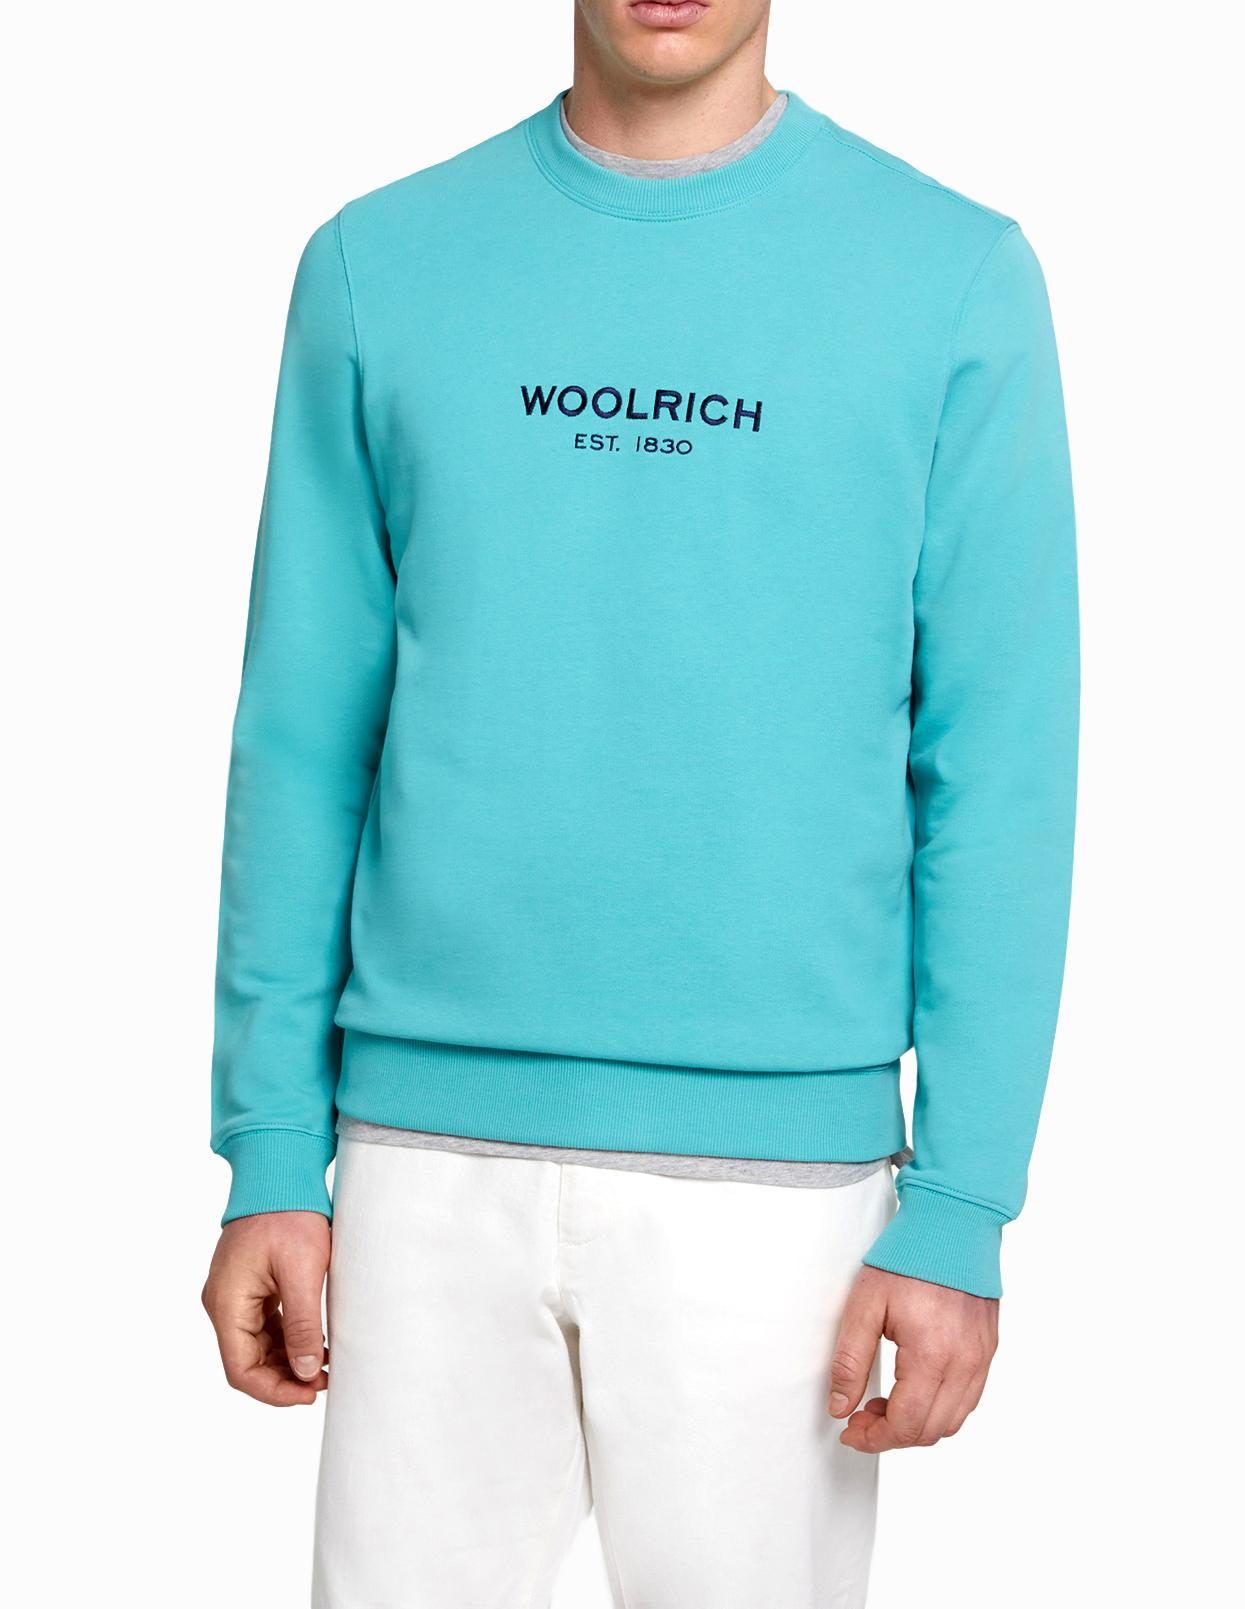 WOOLRICH FELPA UOMO Men's Luxury Light Crew Neck Cotton Colore: WATER GREEN